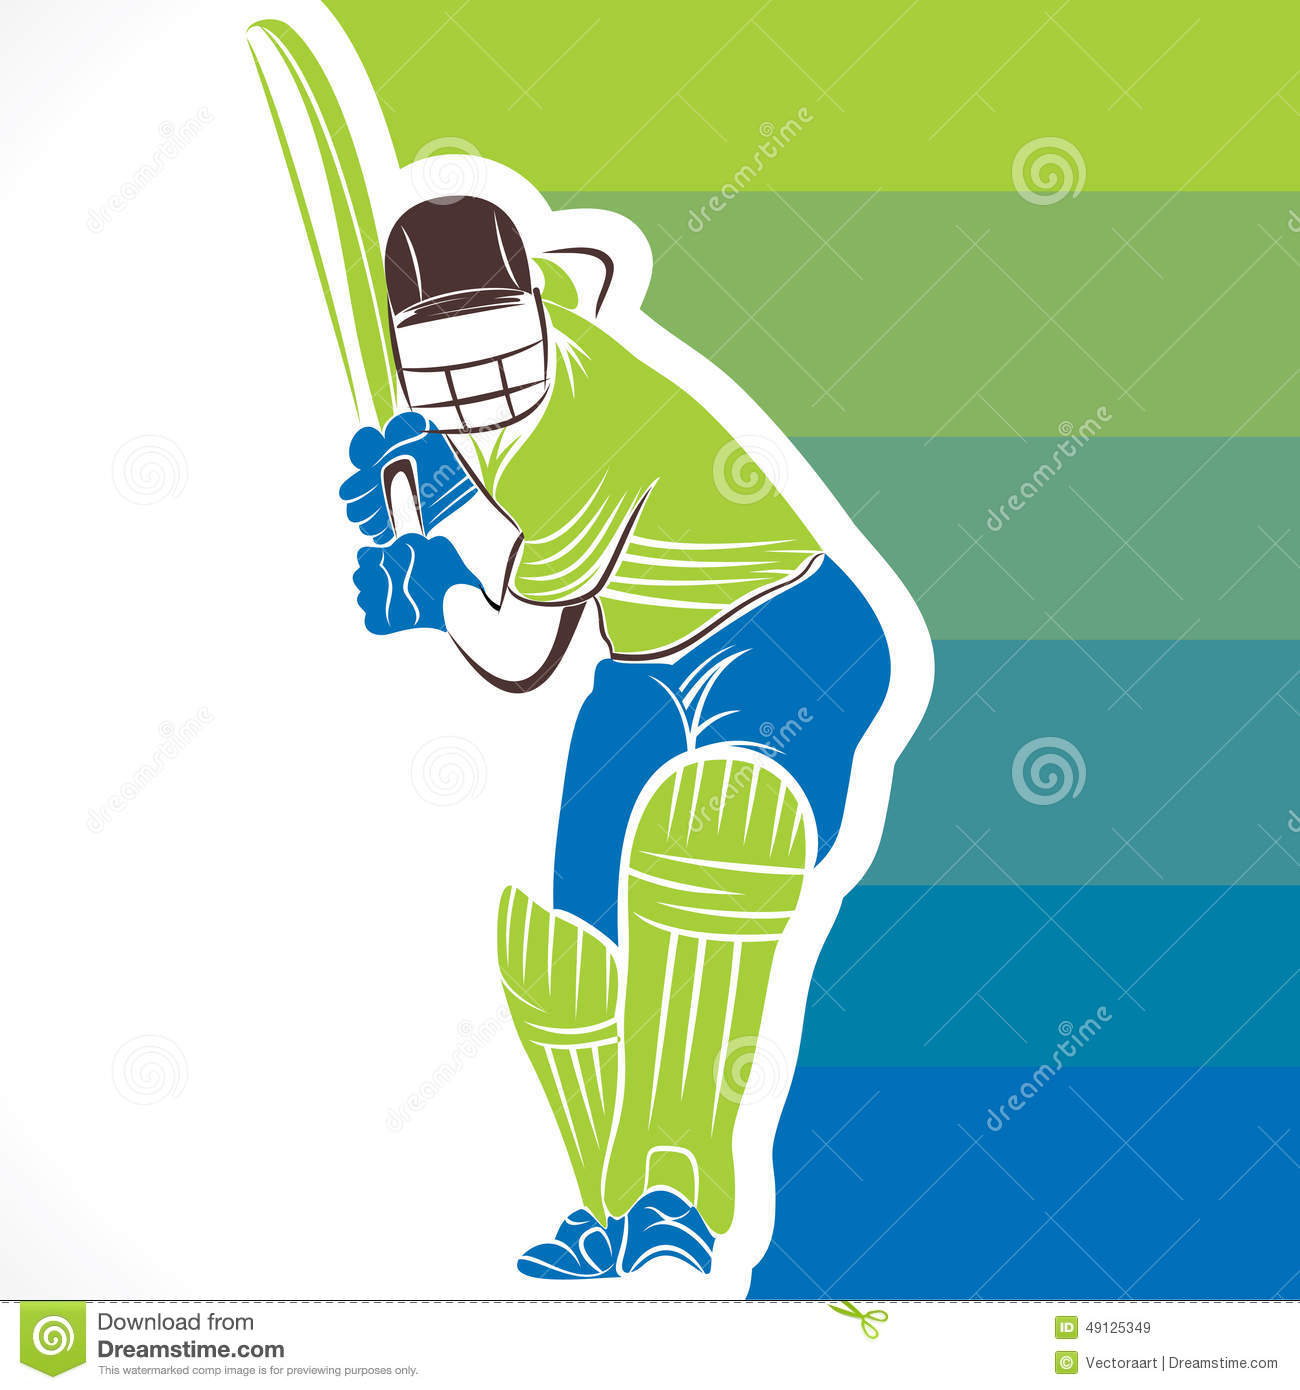 Free House Plan Designer Cricket Player Banner Design Stock Vector Image 49125349